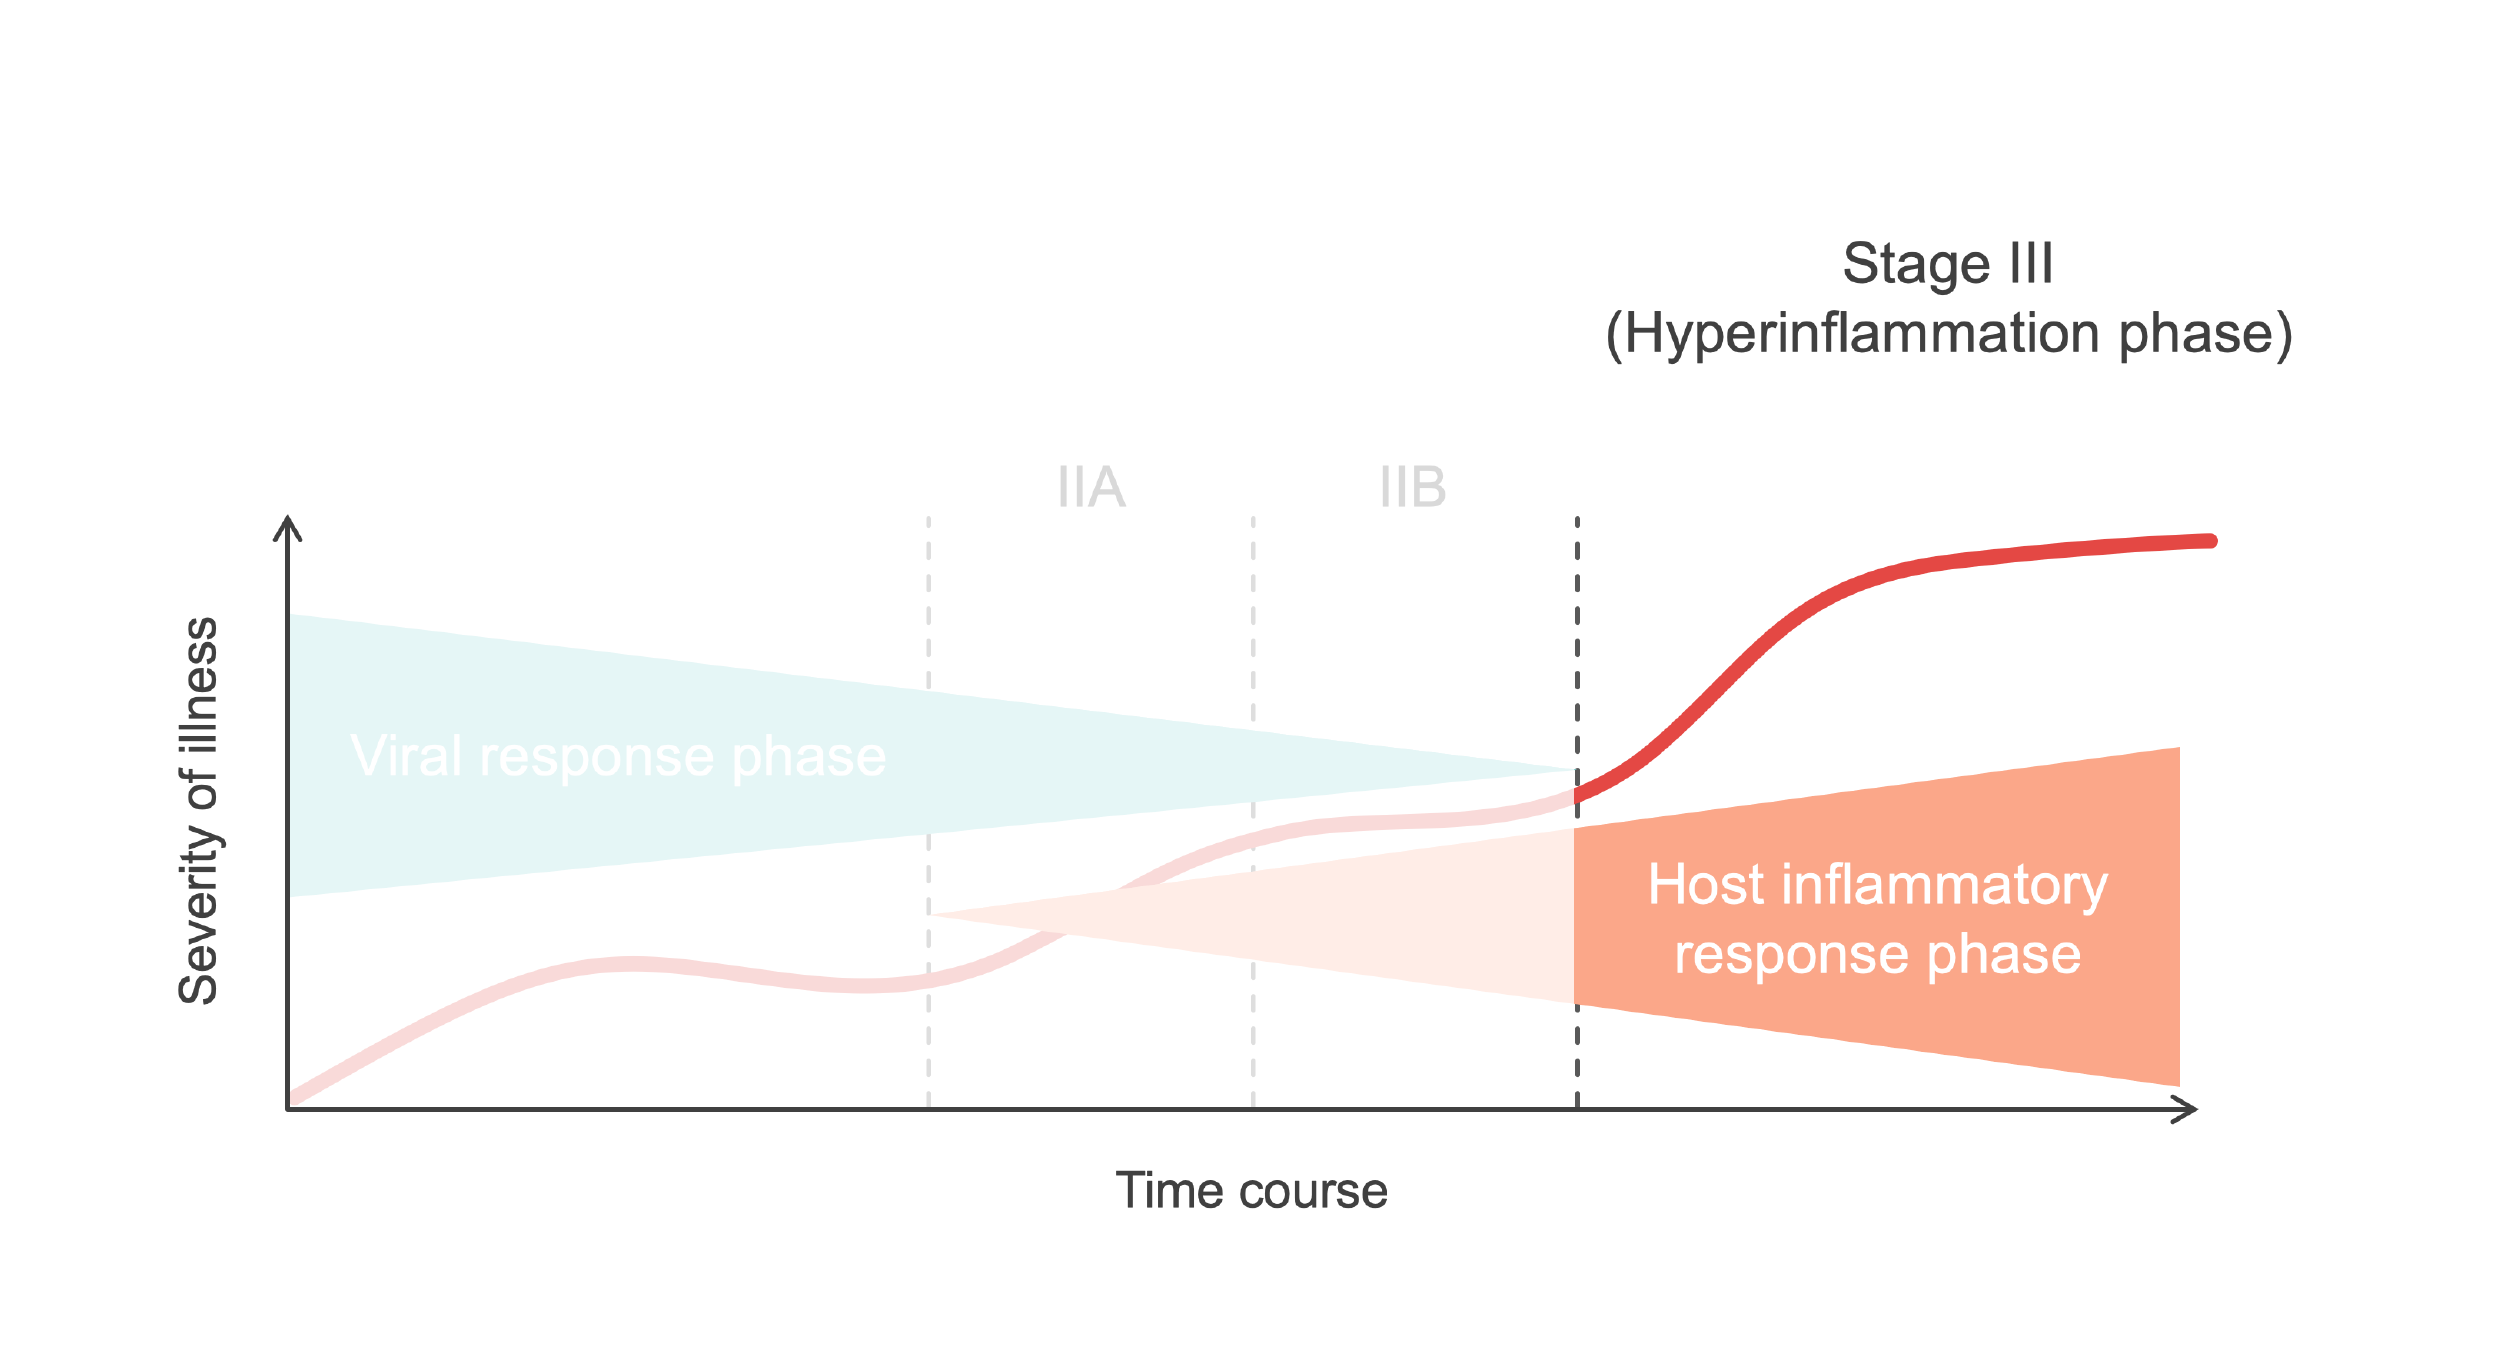 Graph highlighting Stage III of a COVID-19 infection.